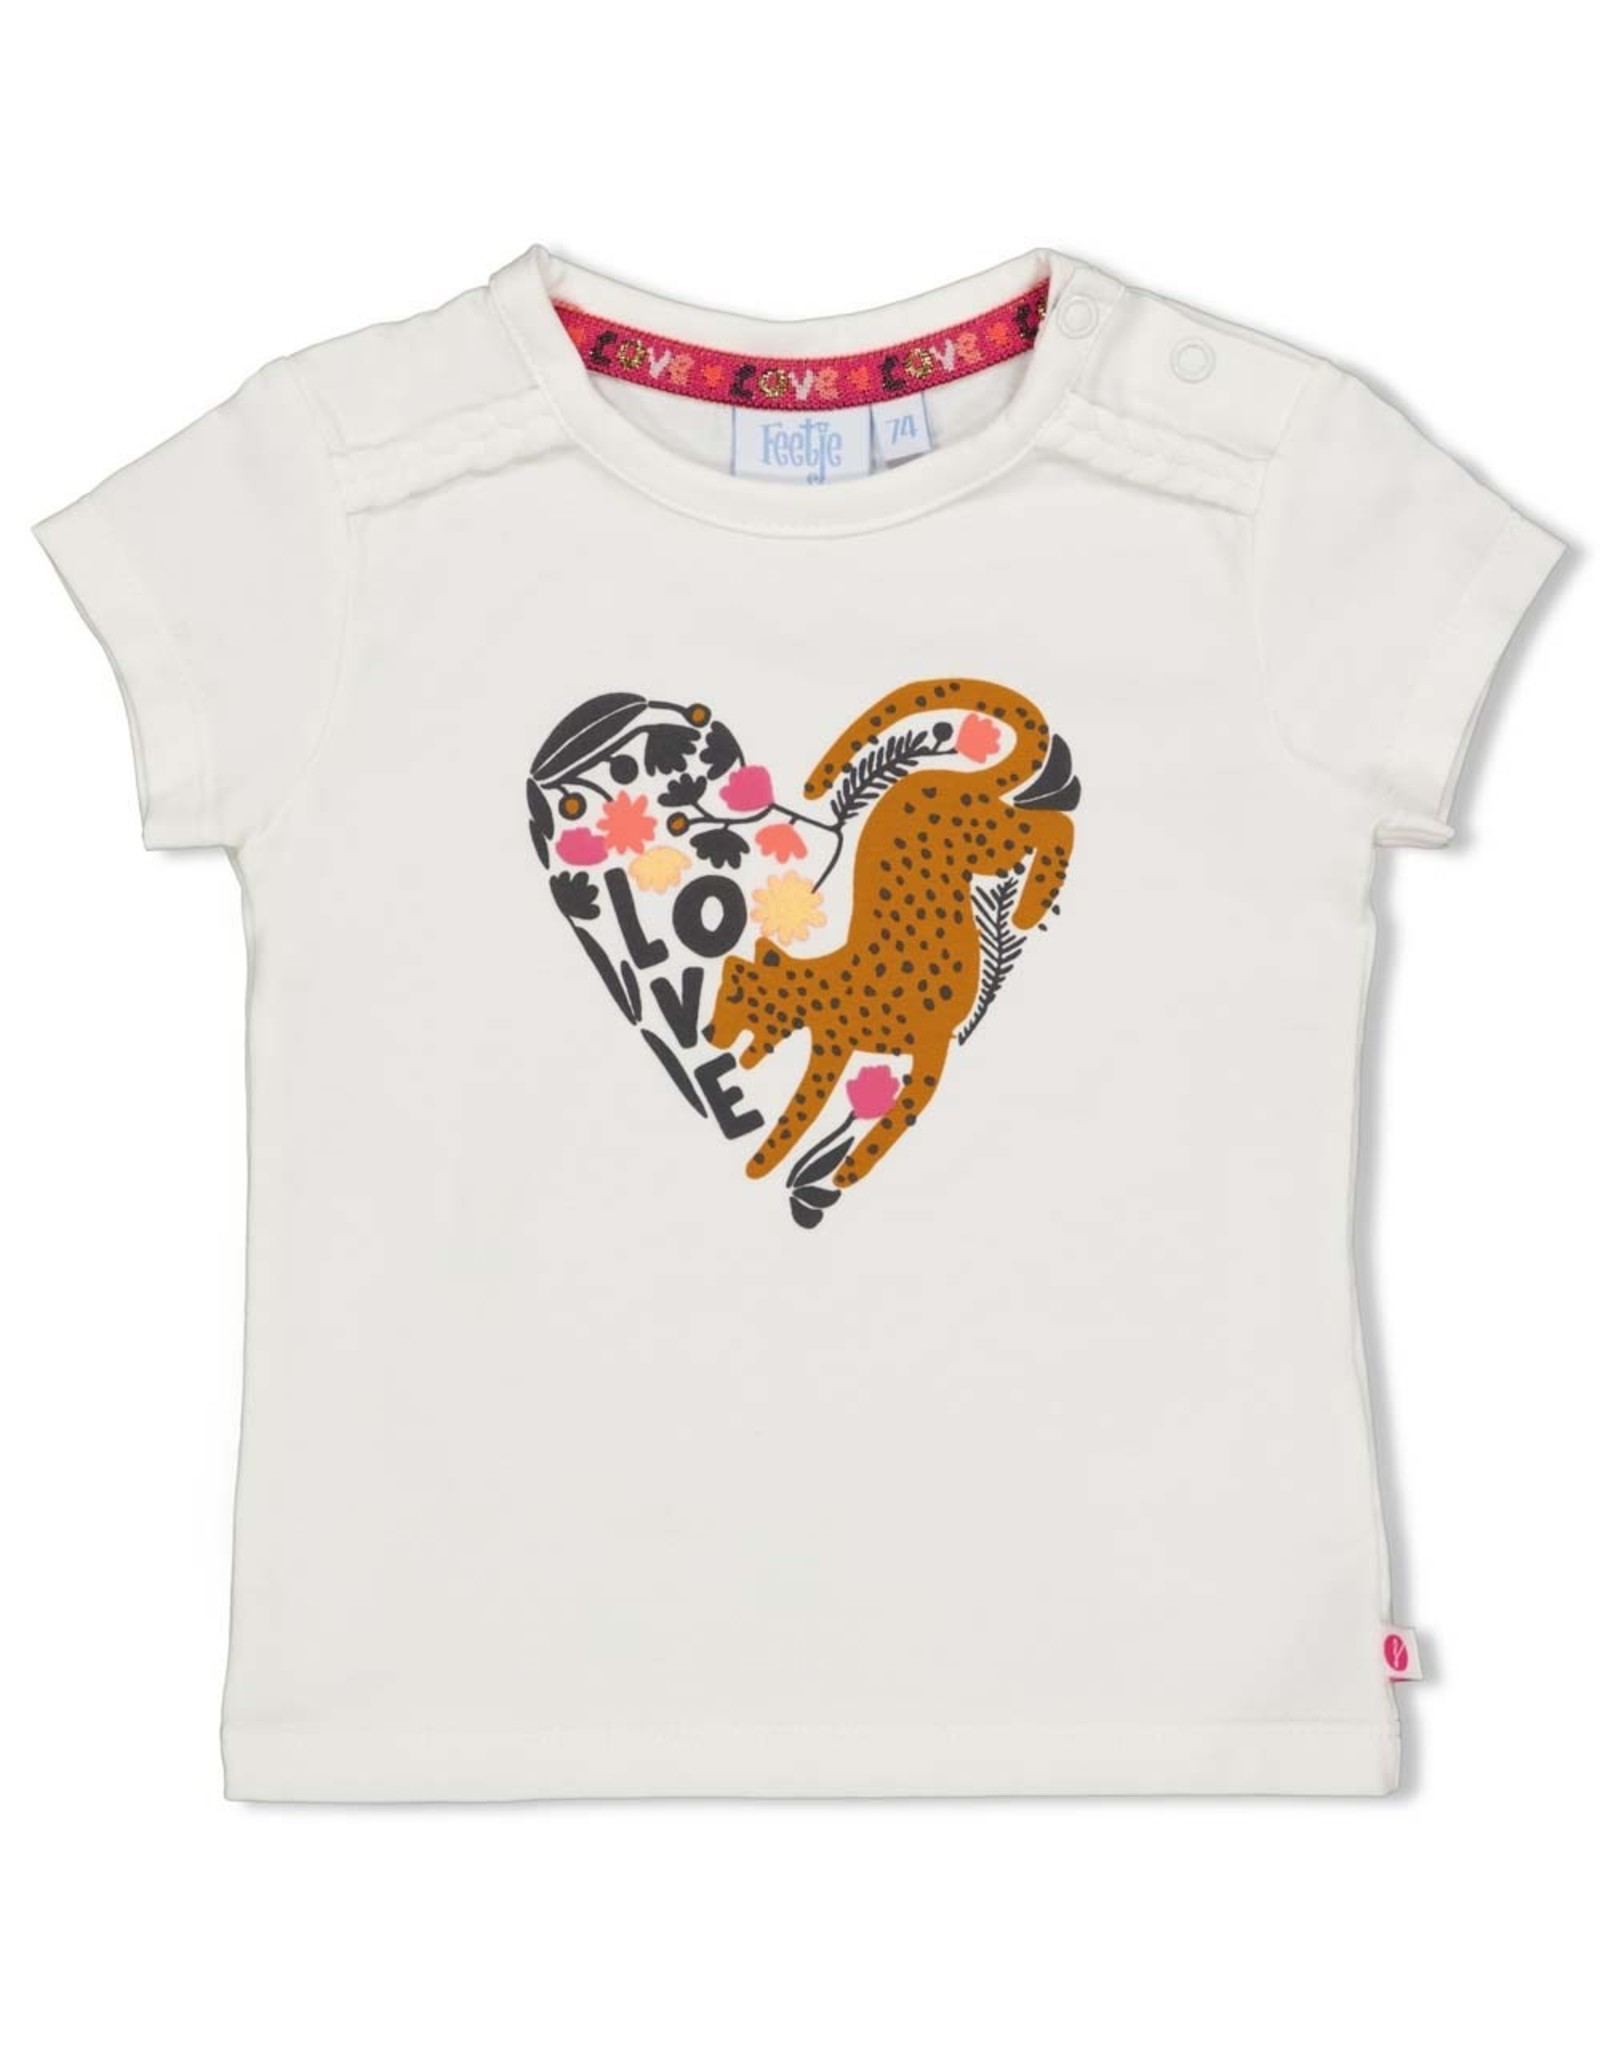 Feetje T-shirt - Whoopsie Daisy. Offwhite